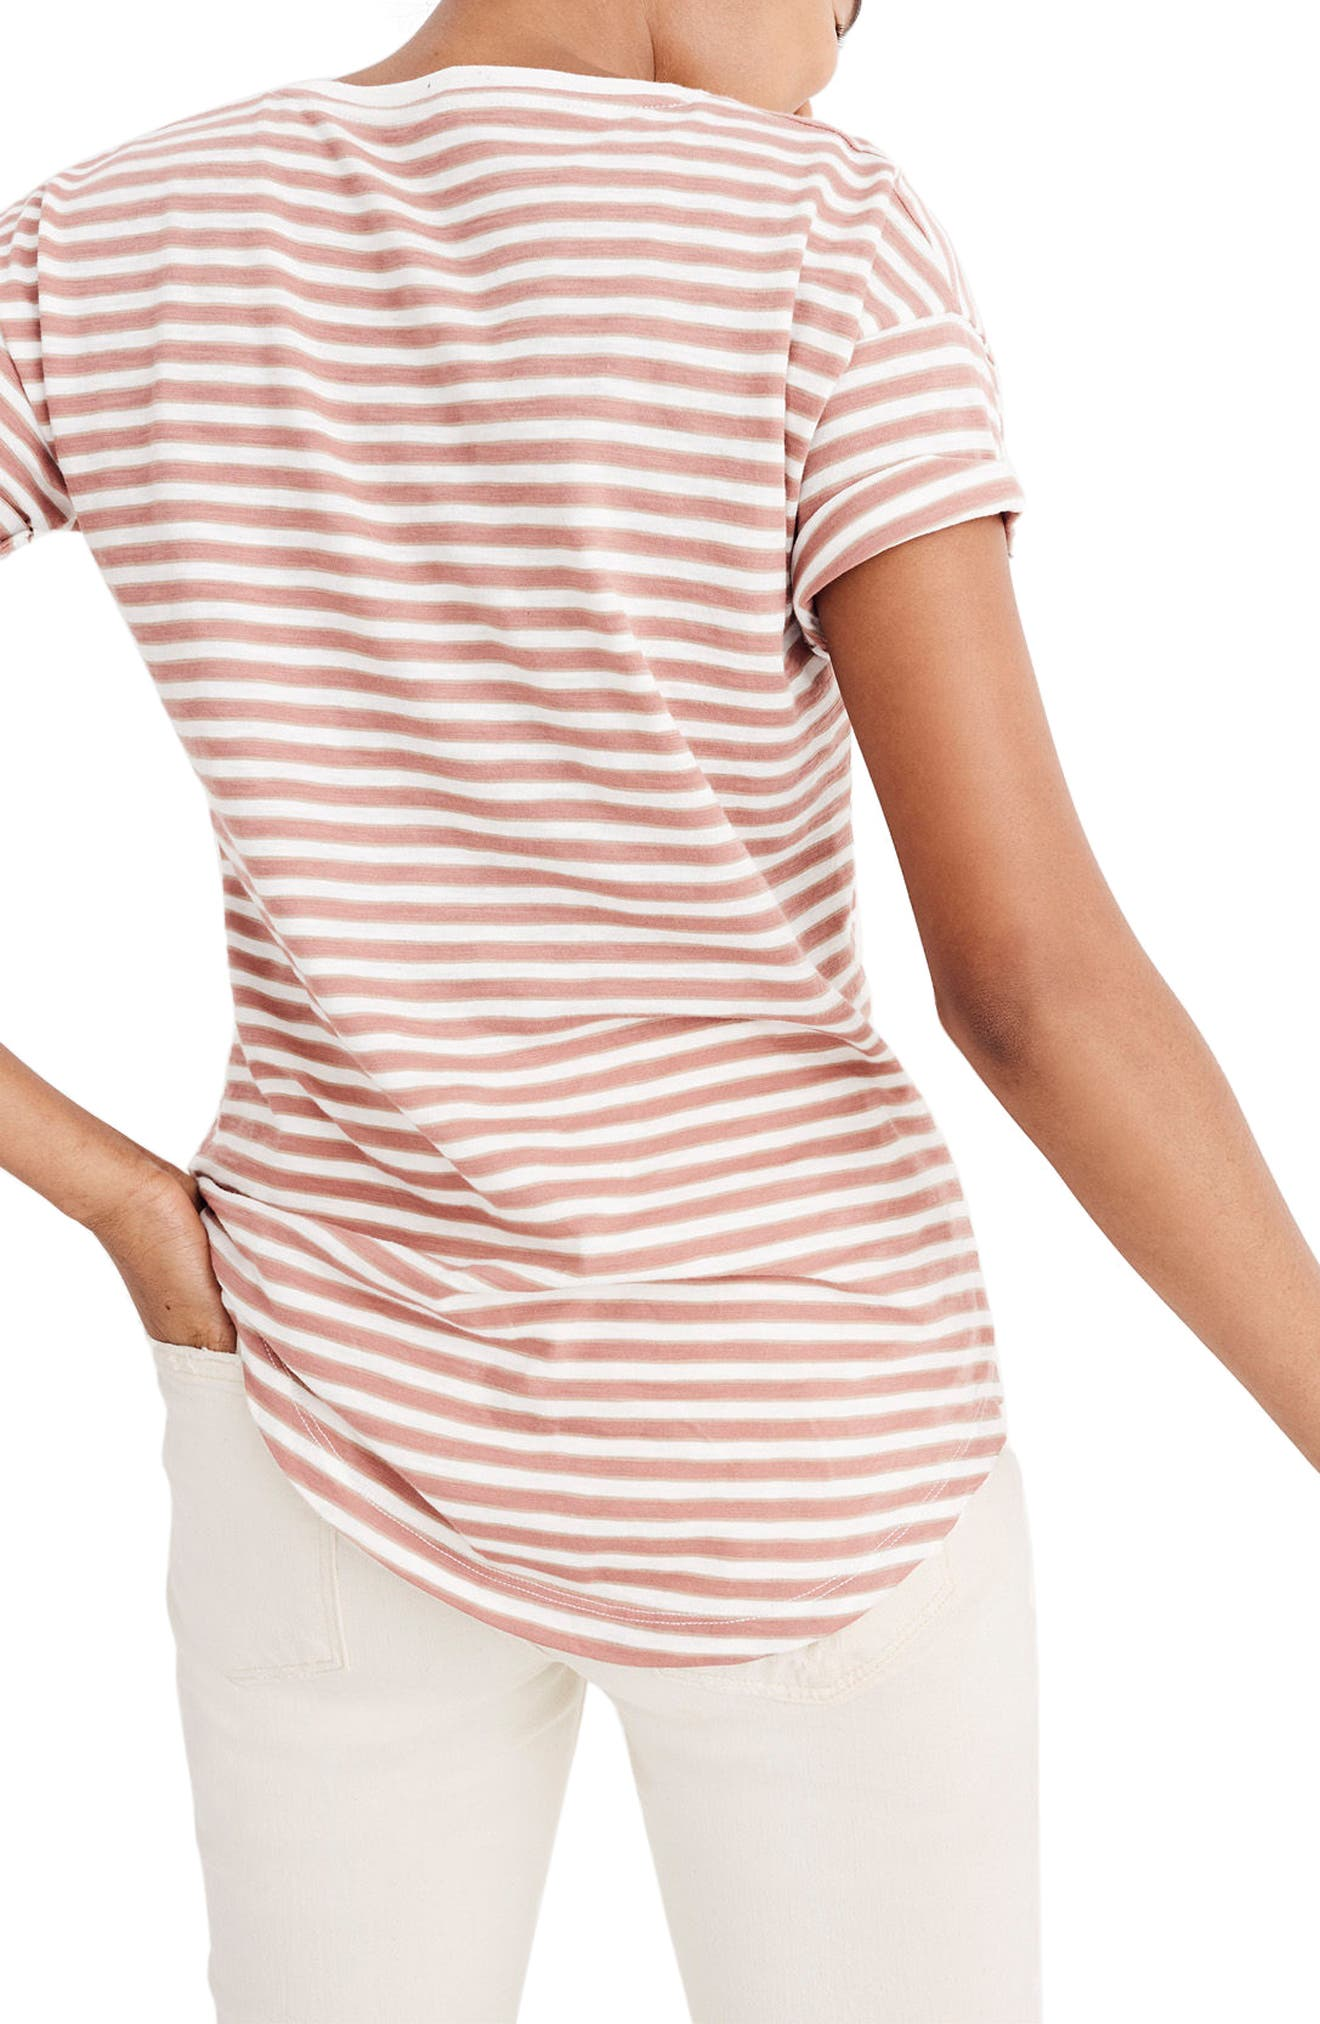 Alternate Image 2  - Madewell Stripe Whisper Cotton Crewneck Tee